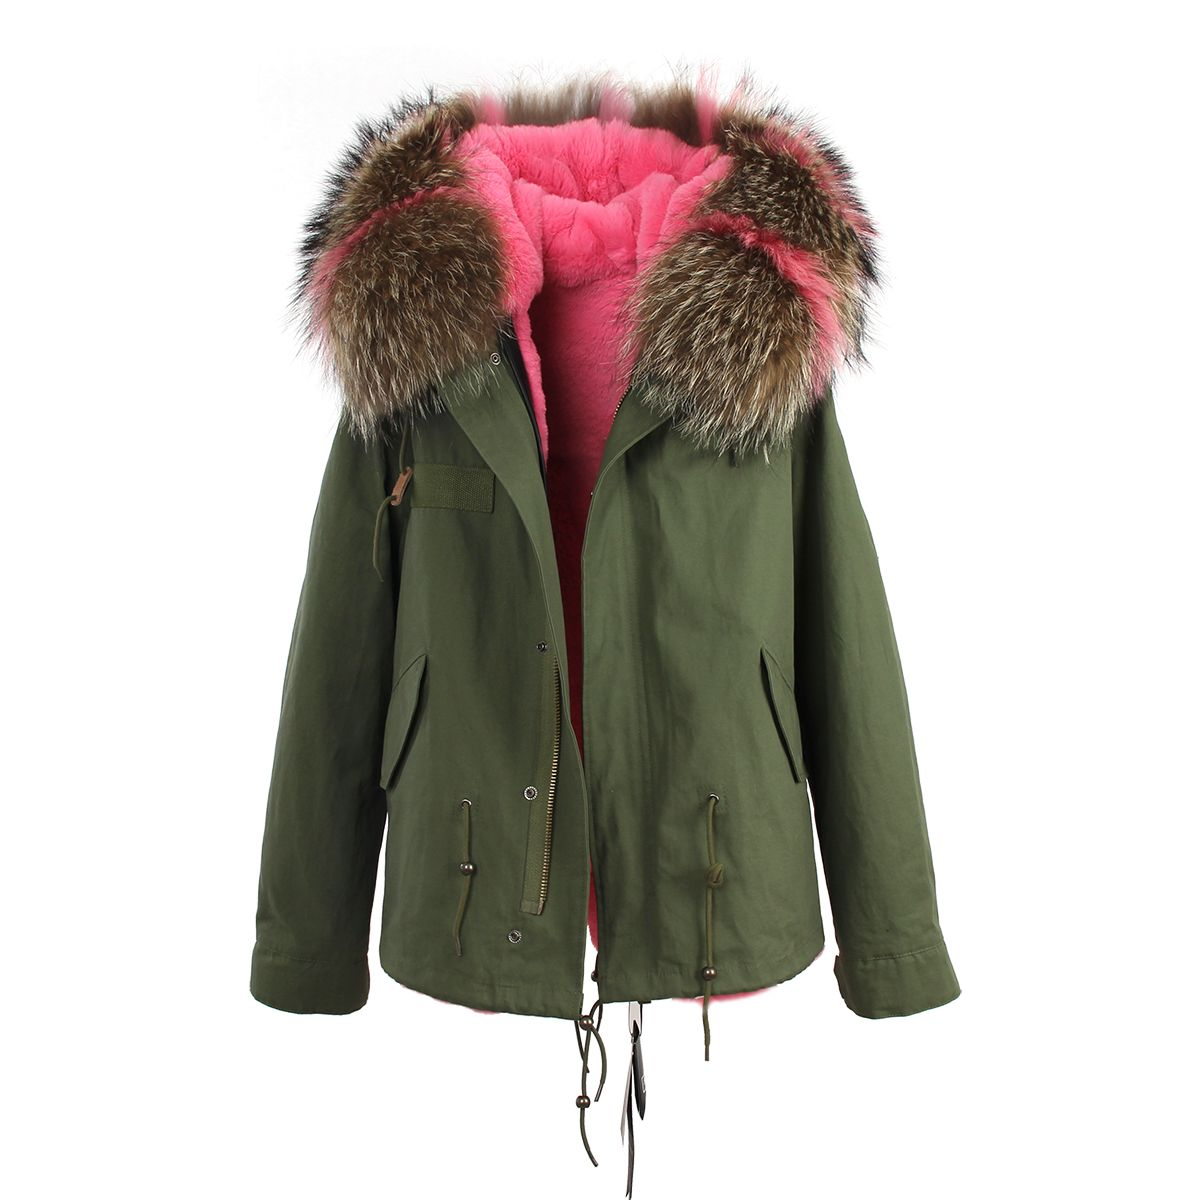 Green parka jacket with patchwork stripe fur hood and faux fur lining. #slayaccessories #parka #furparka #jacket #greenparka #olivegreen #pink #pinkfur #stripe #patchwork #miniparka #stylish #chic #fashion #outerwear #aw16